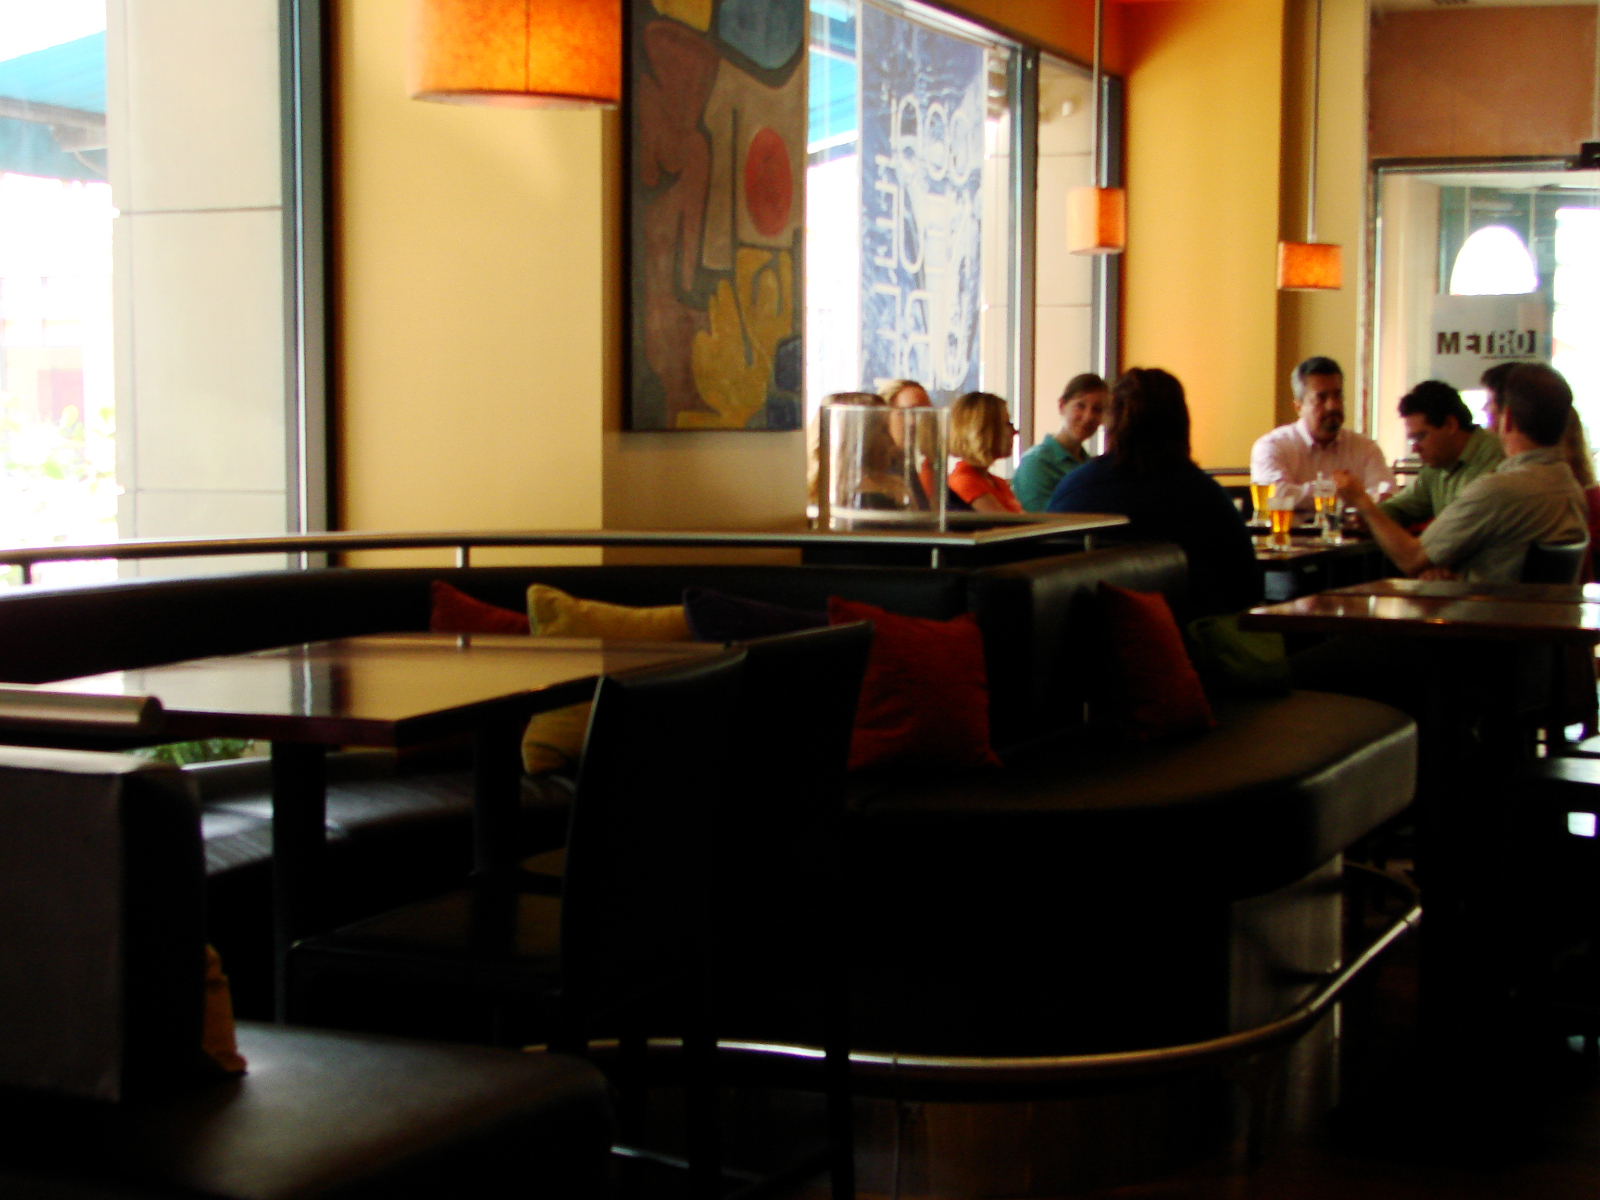 Whole banquette at Hotel Metro.